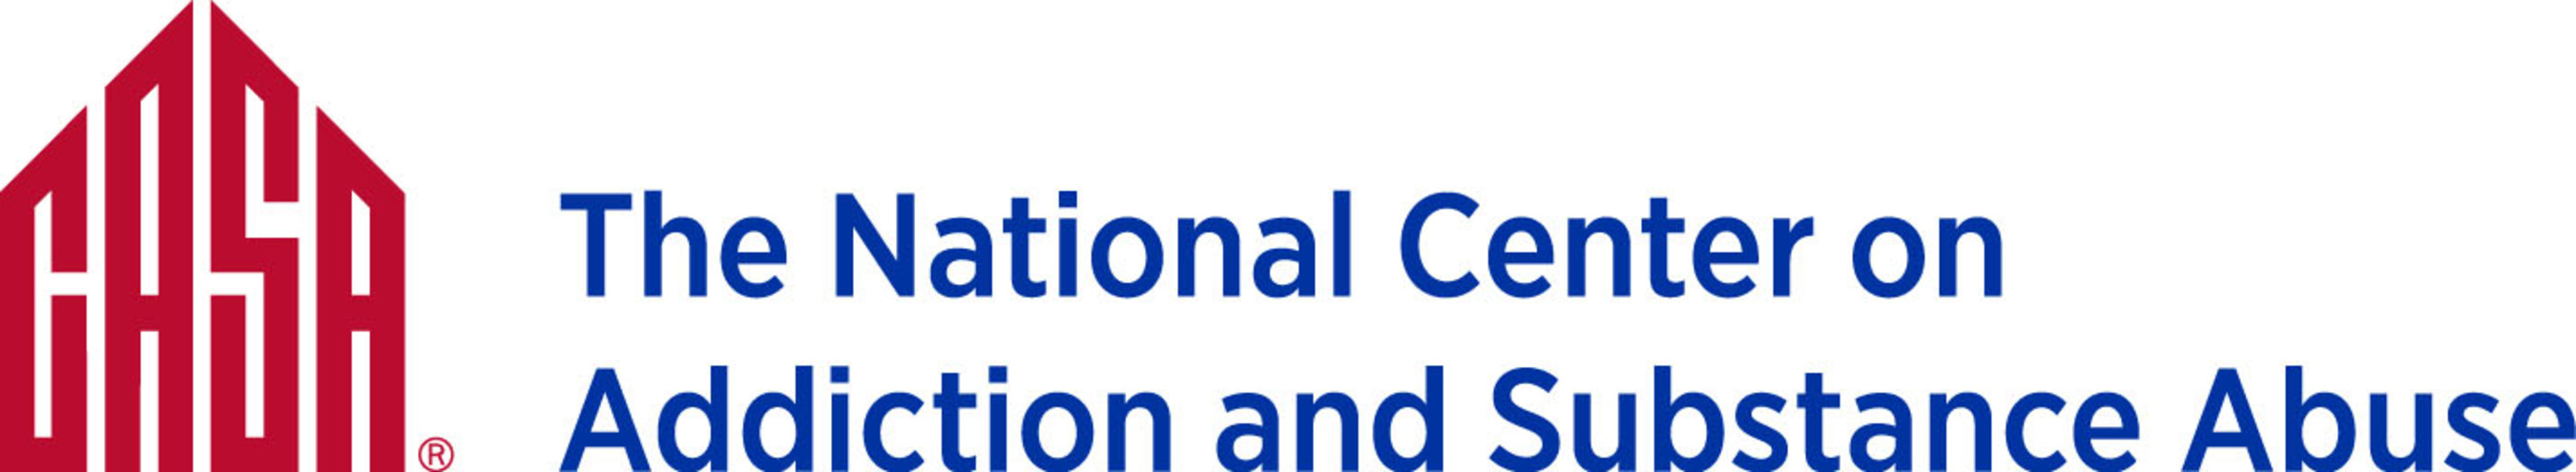 The National Center on Addiction and Substance Abuse